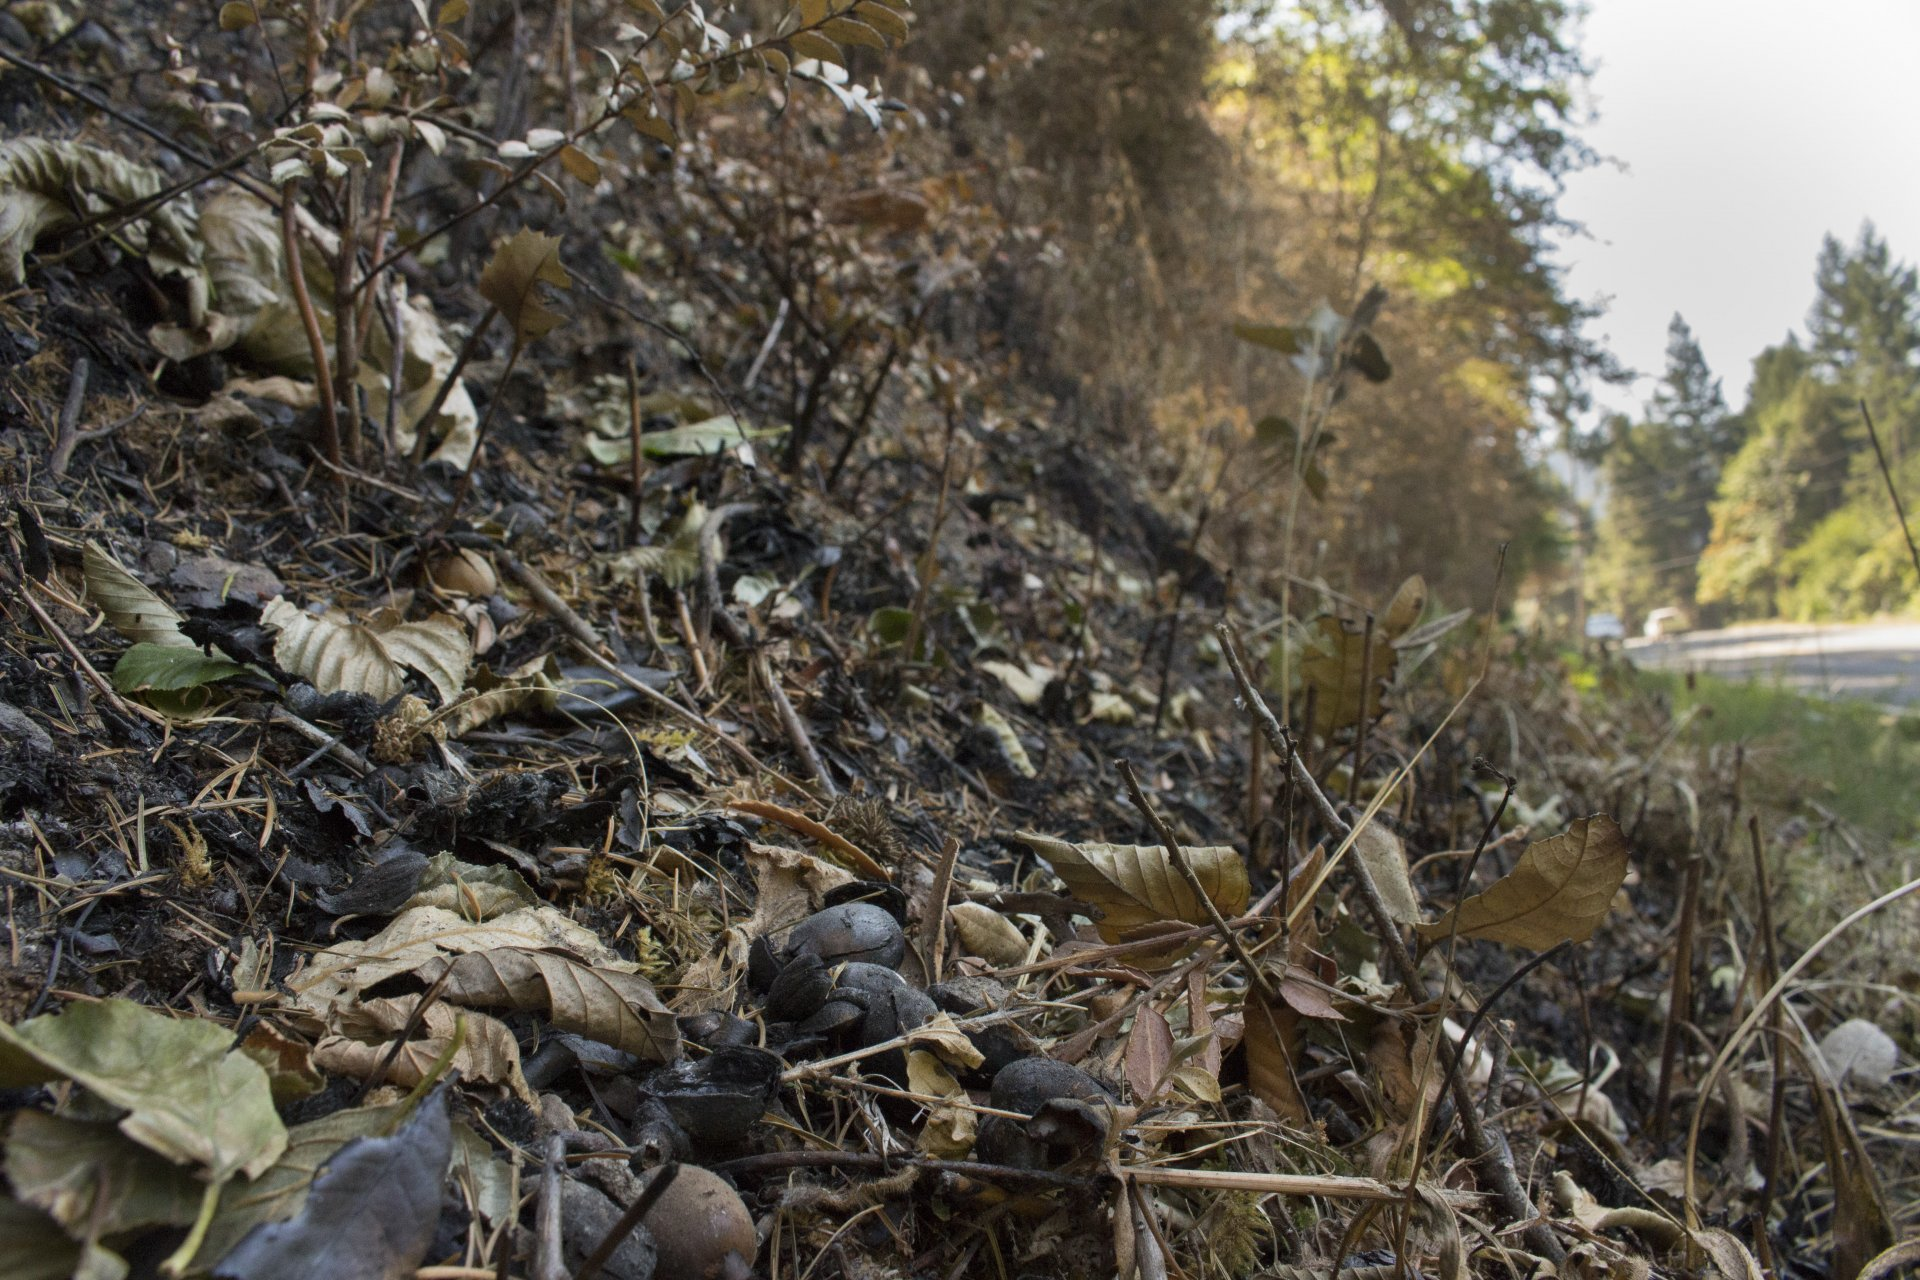 (Photo by Nick Kemper) Blackened acorns lay among the roasted remains of the Humboldt County Mill Creek Fire in Hoopa.